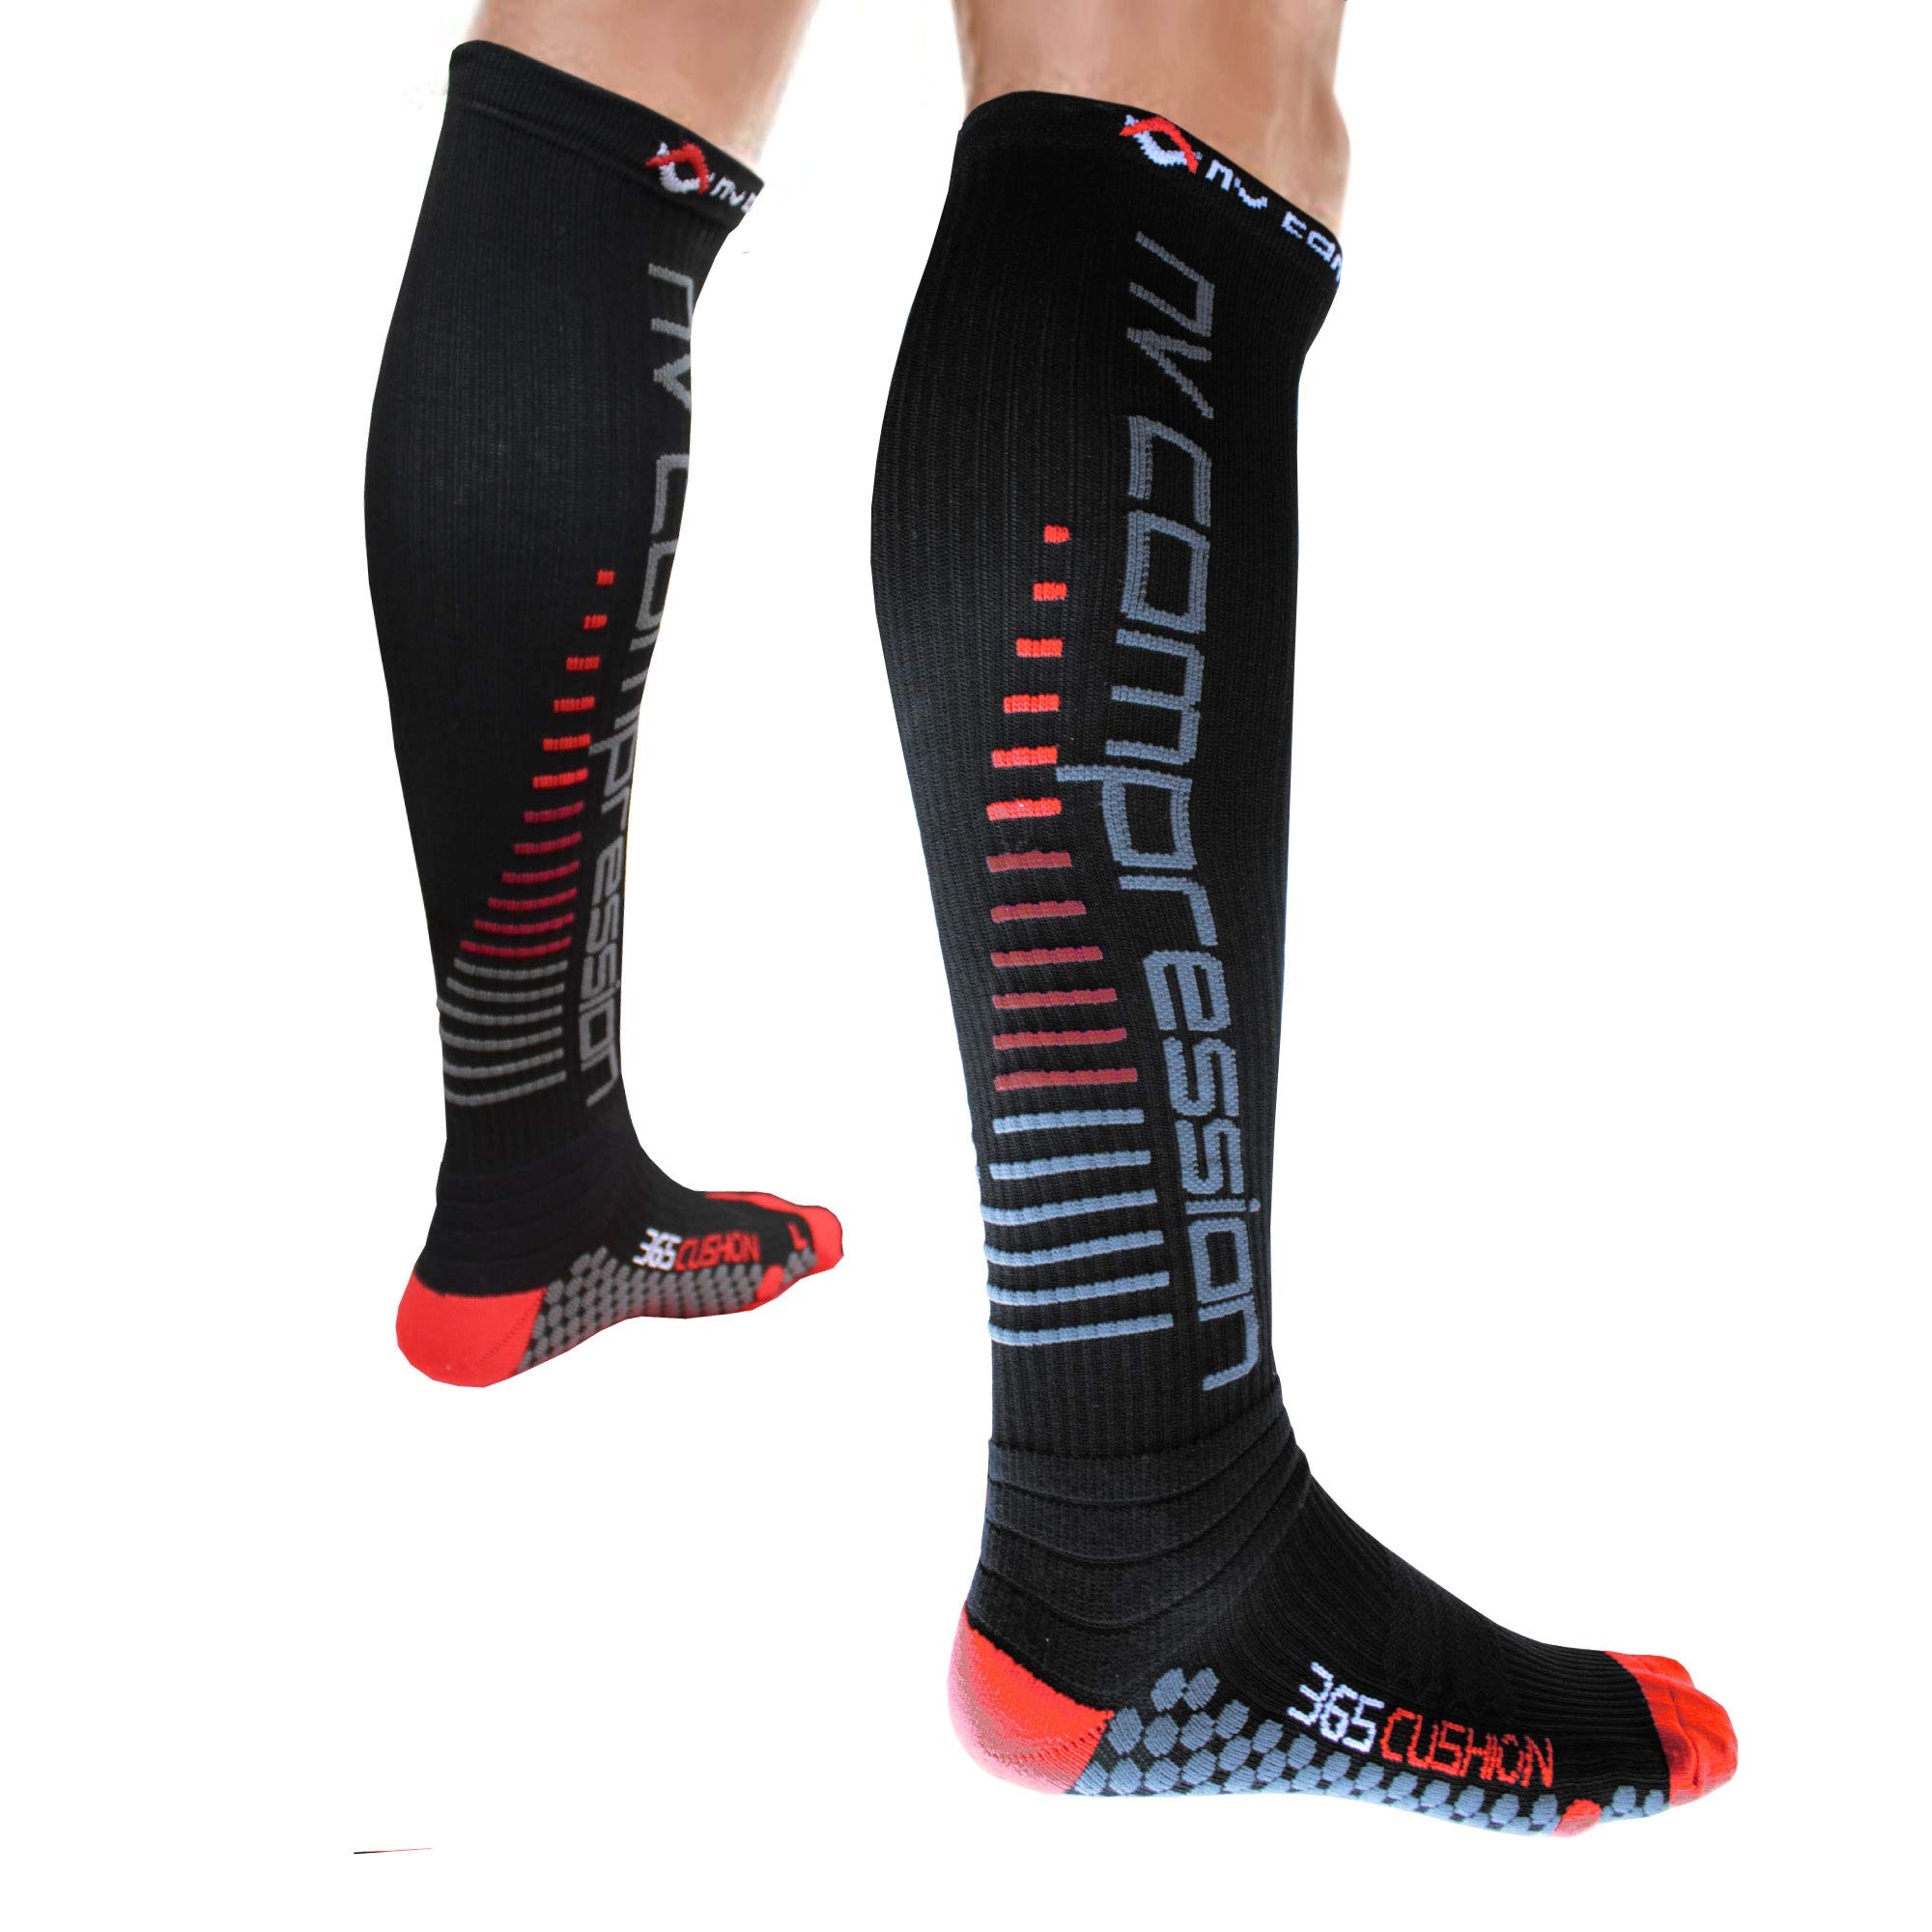 37e6244ce NV Compression 365 Cushion Calcetines Compresión Negros - Cushioned  Compression Socks - Black - For Sports